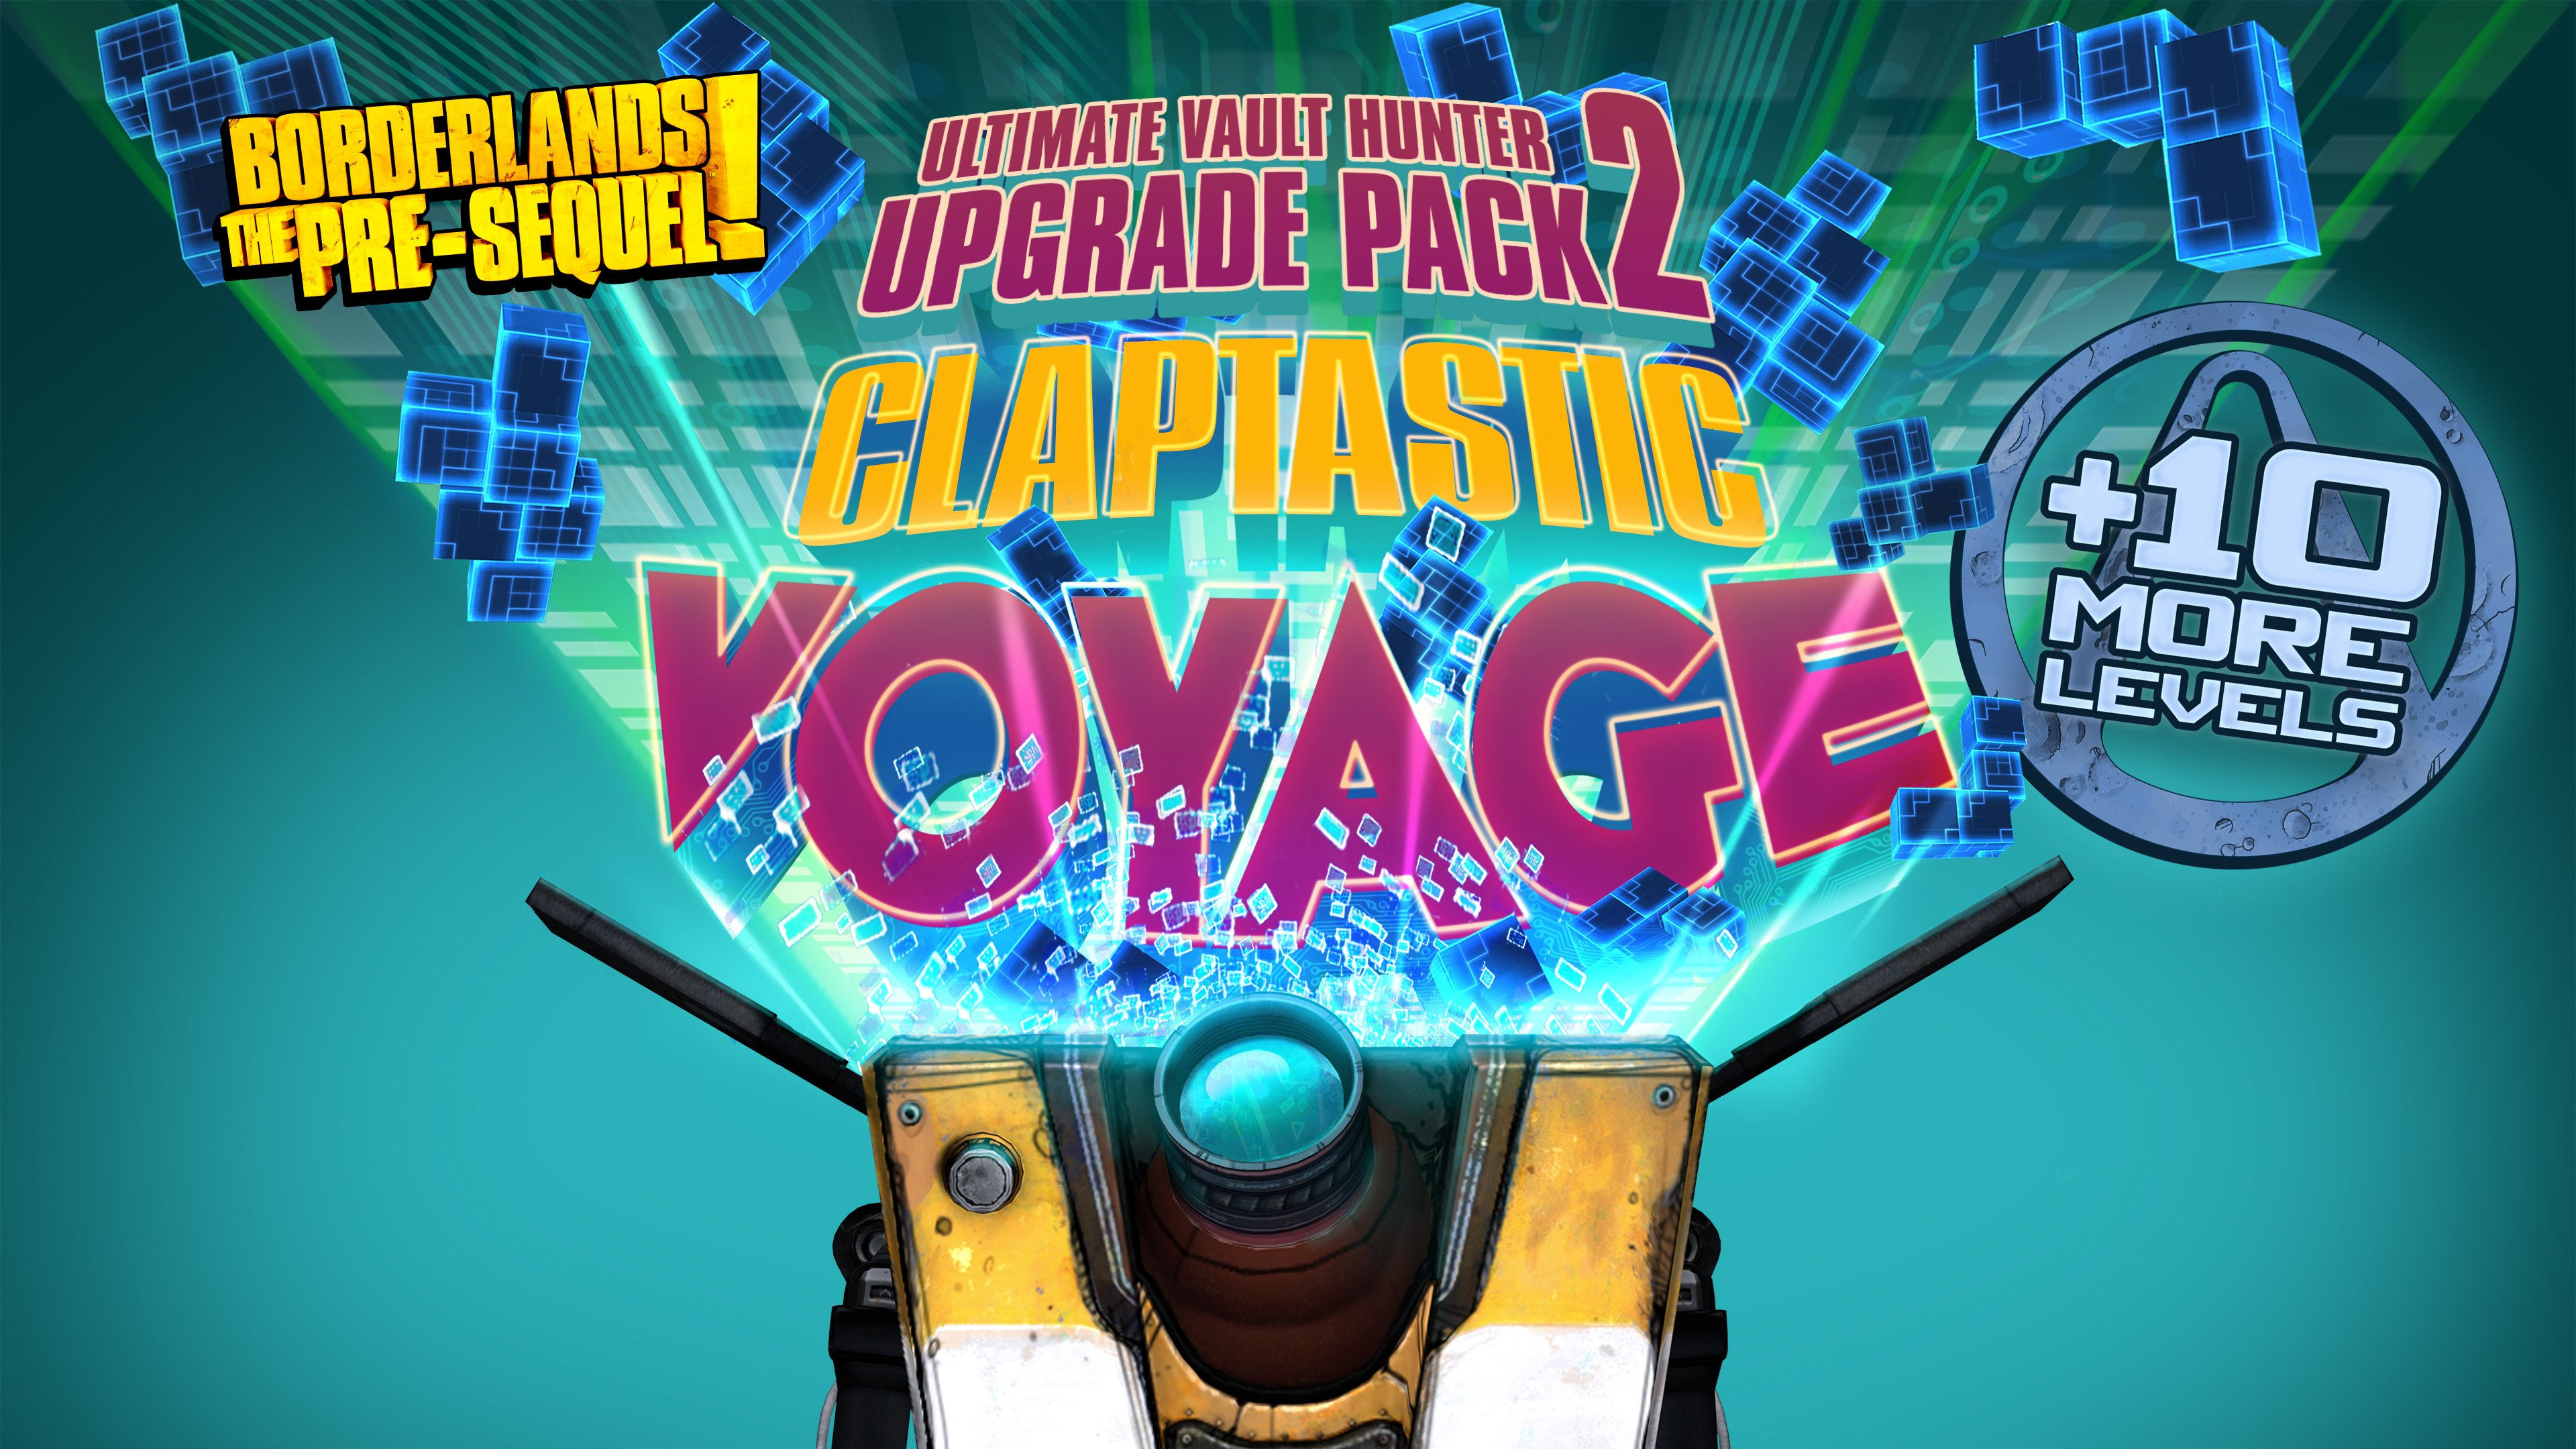 Borderlands The Pre Sequel Claptastic Voyage And Ultimate Vault